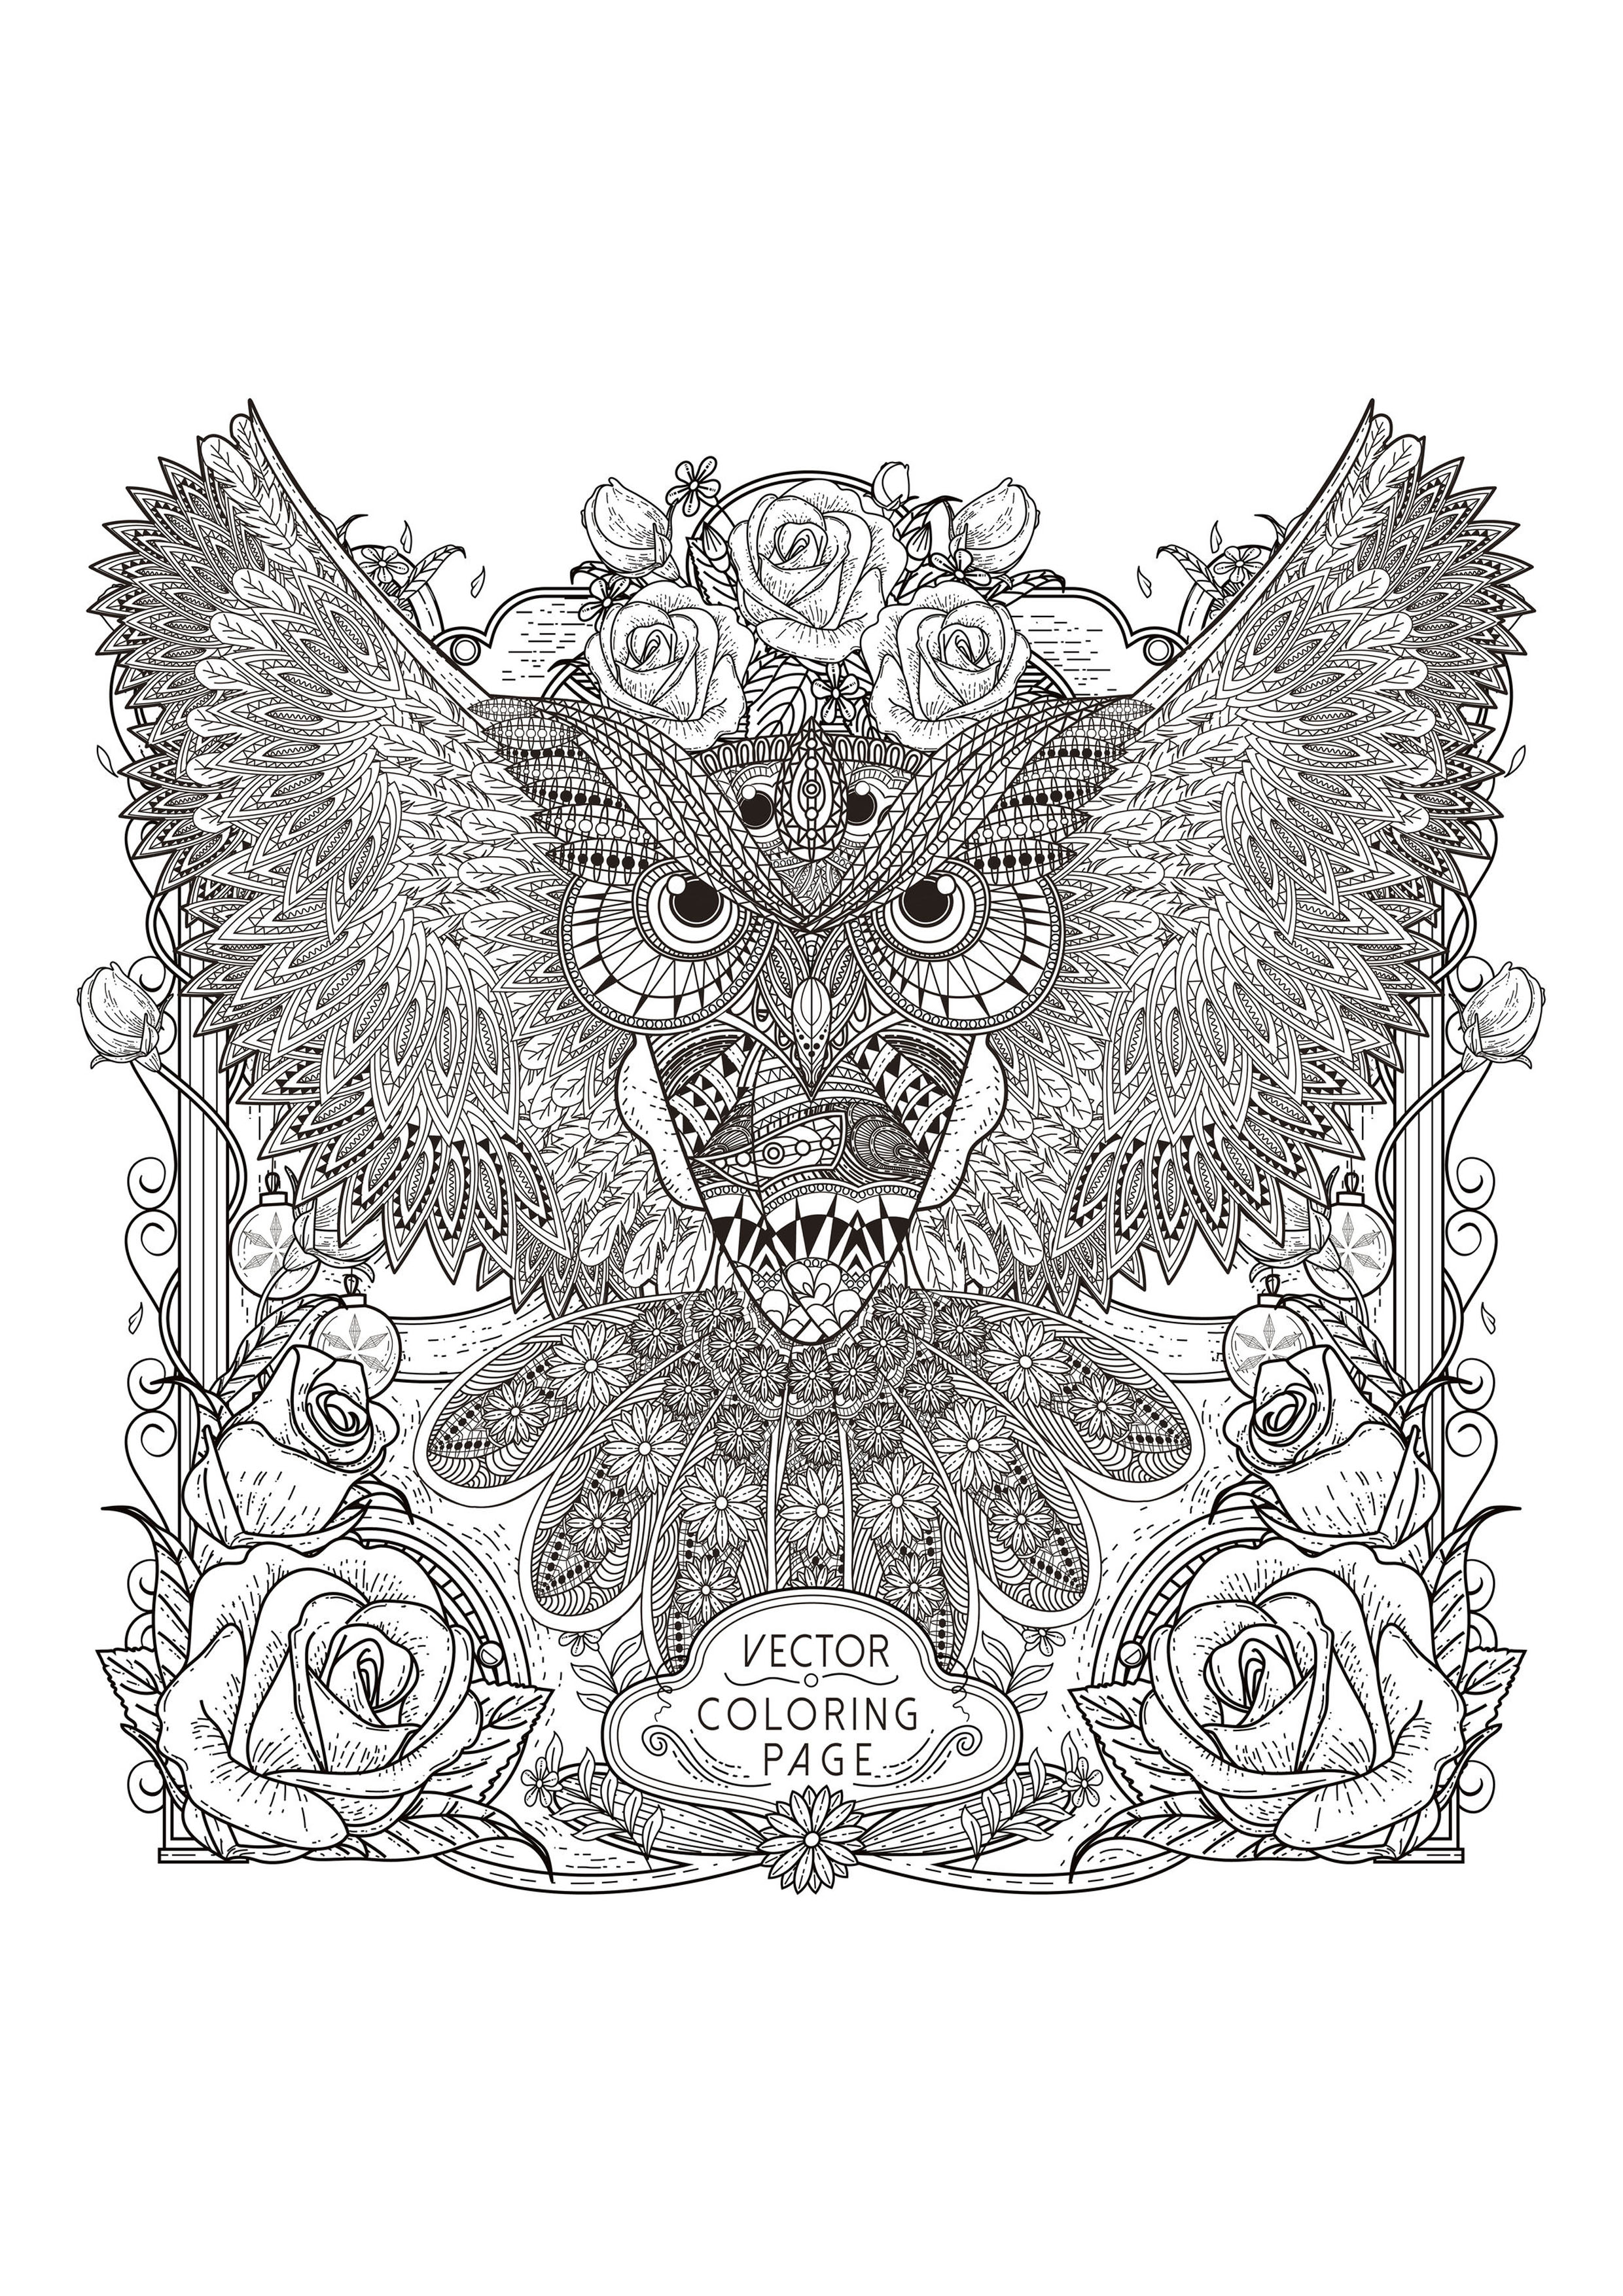 Coloring pages zentangle - From The Gallery Zentangle Artist Kchung